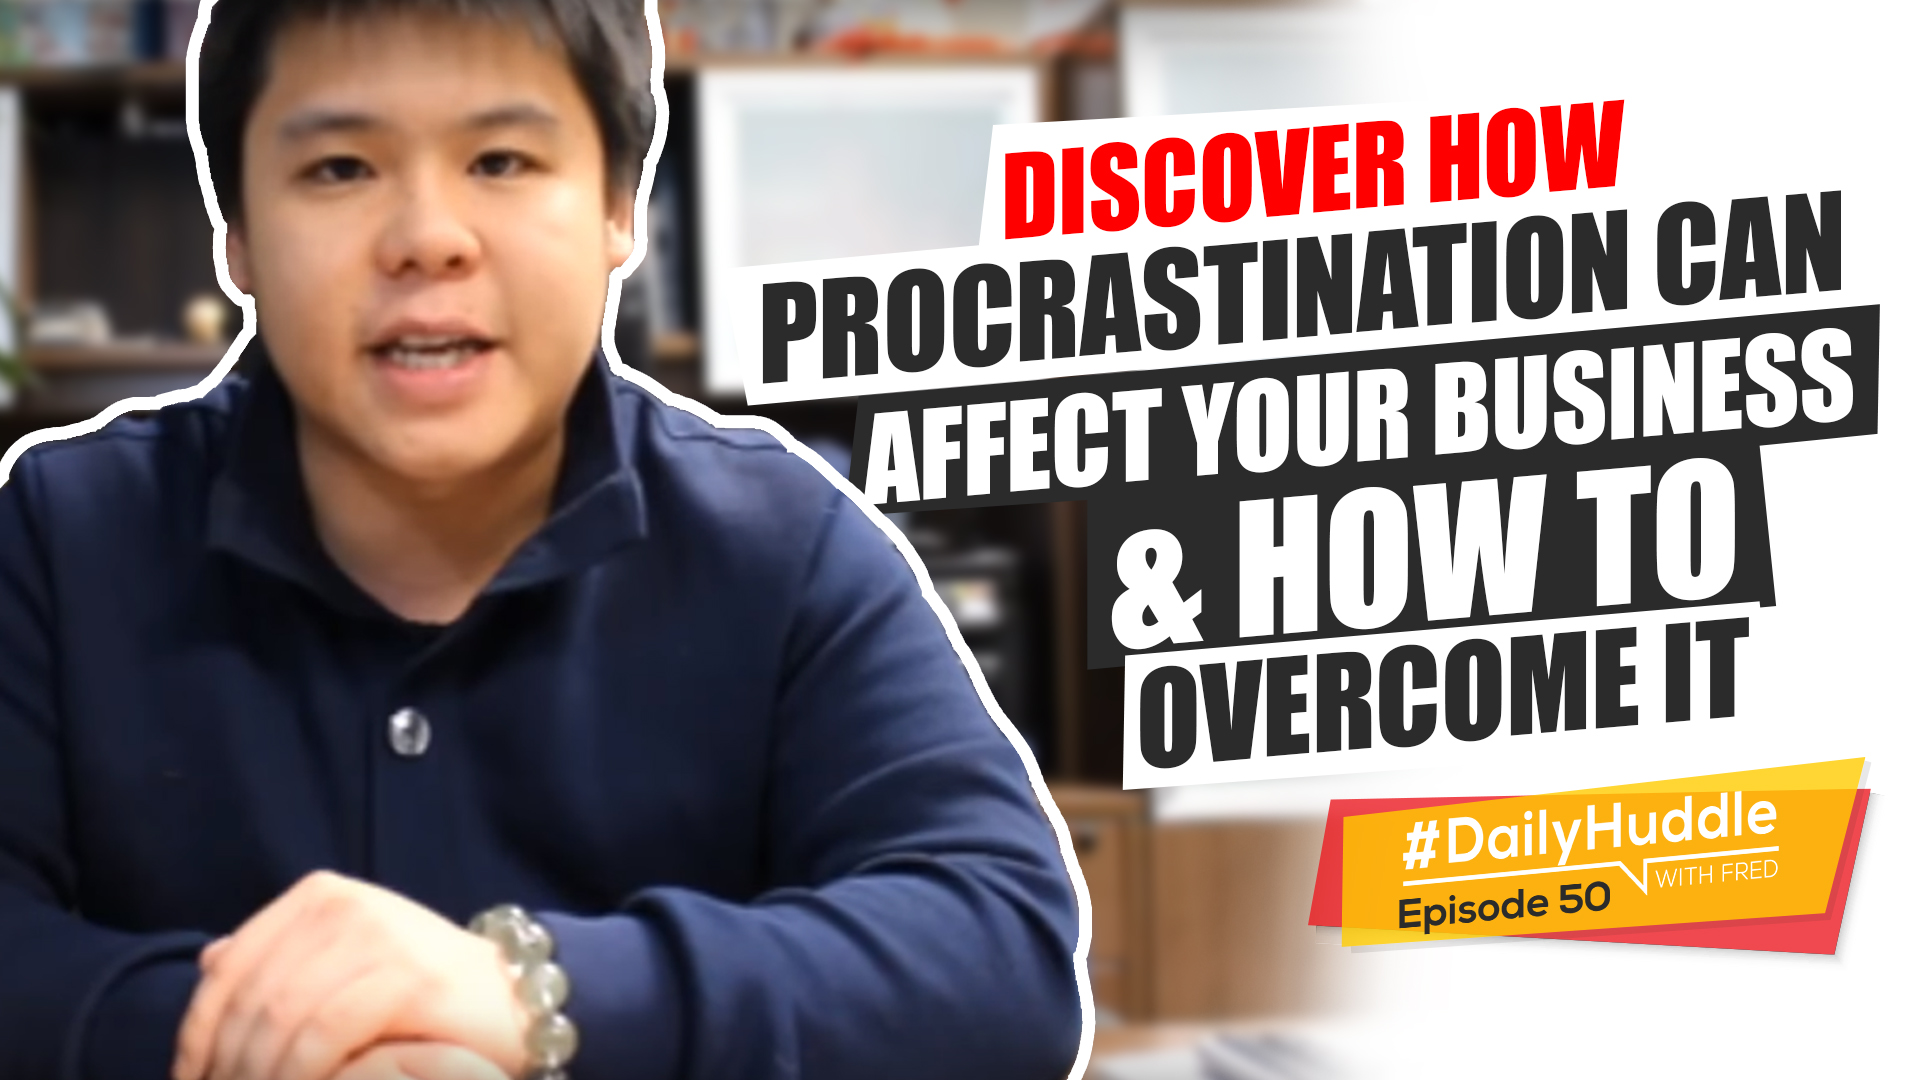 Daily Huddle - Ep 50 | Discover How Procrastination Can Affect Your Business & How To Overcome It